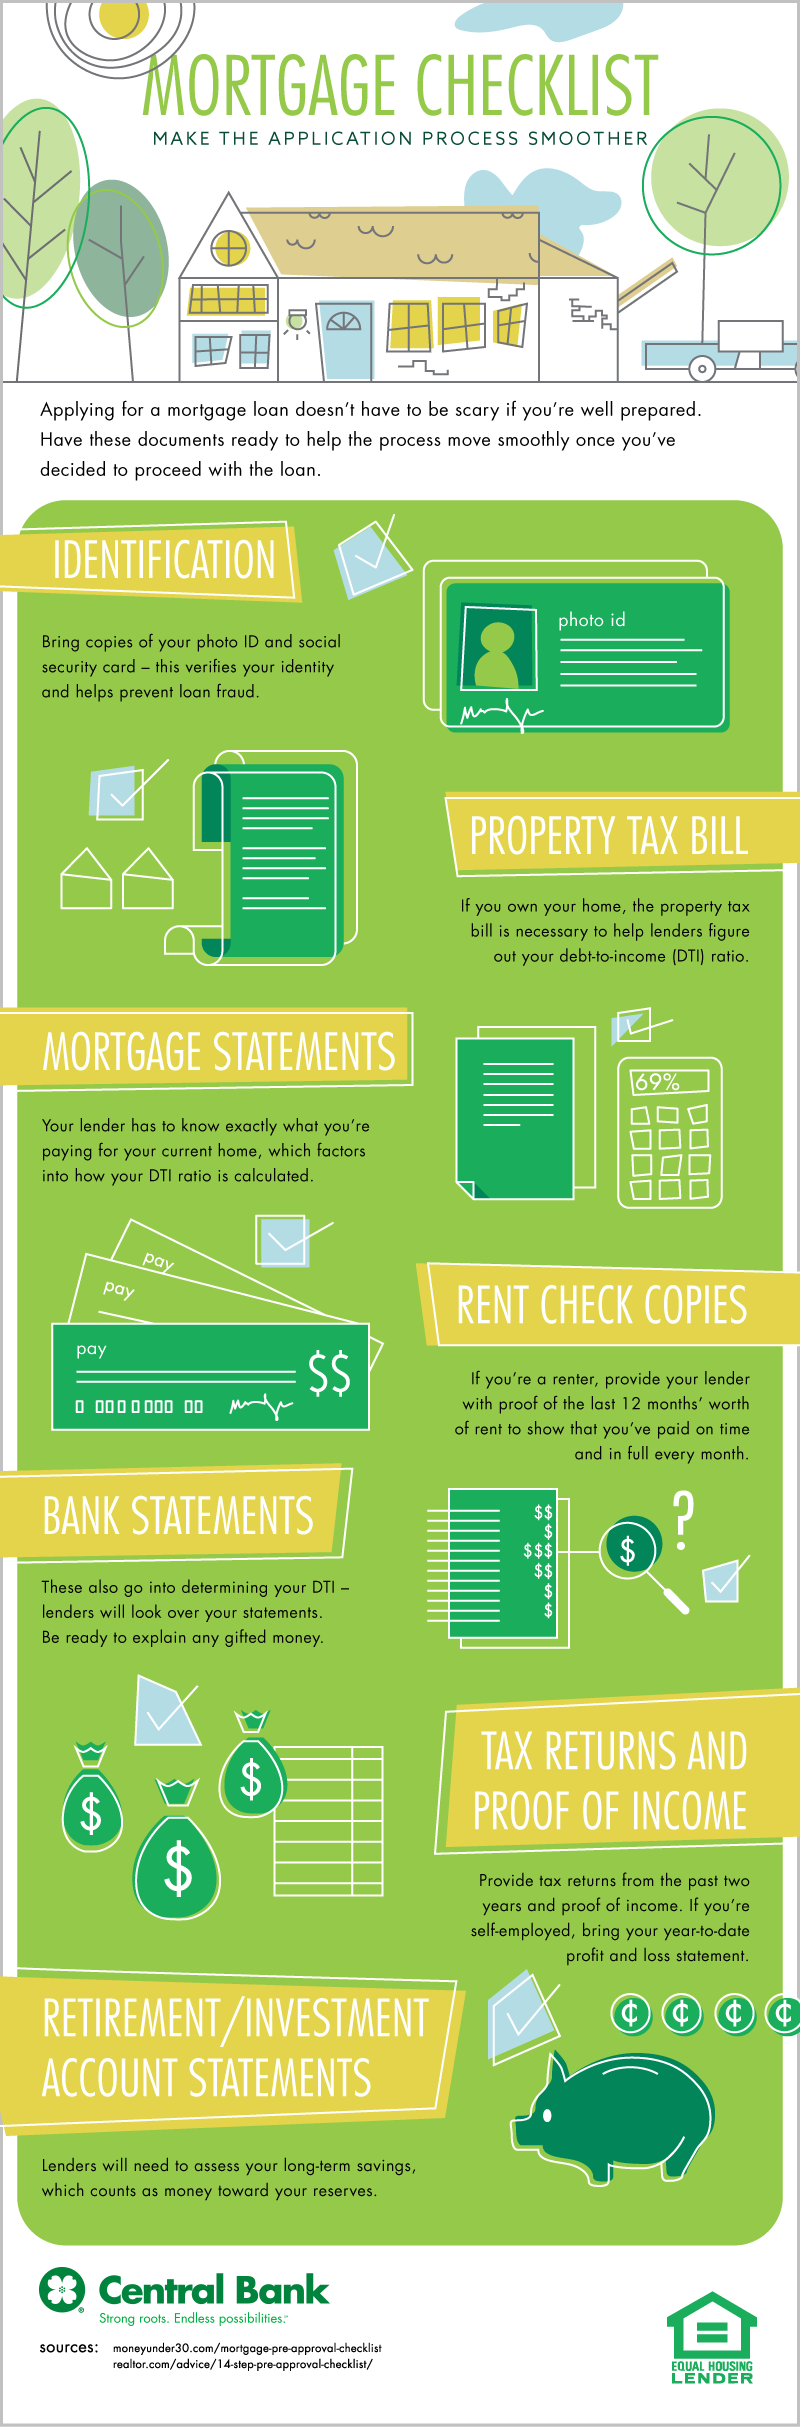 mortgage-checklist [infographic]